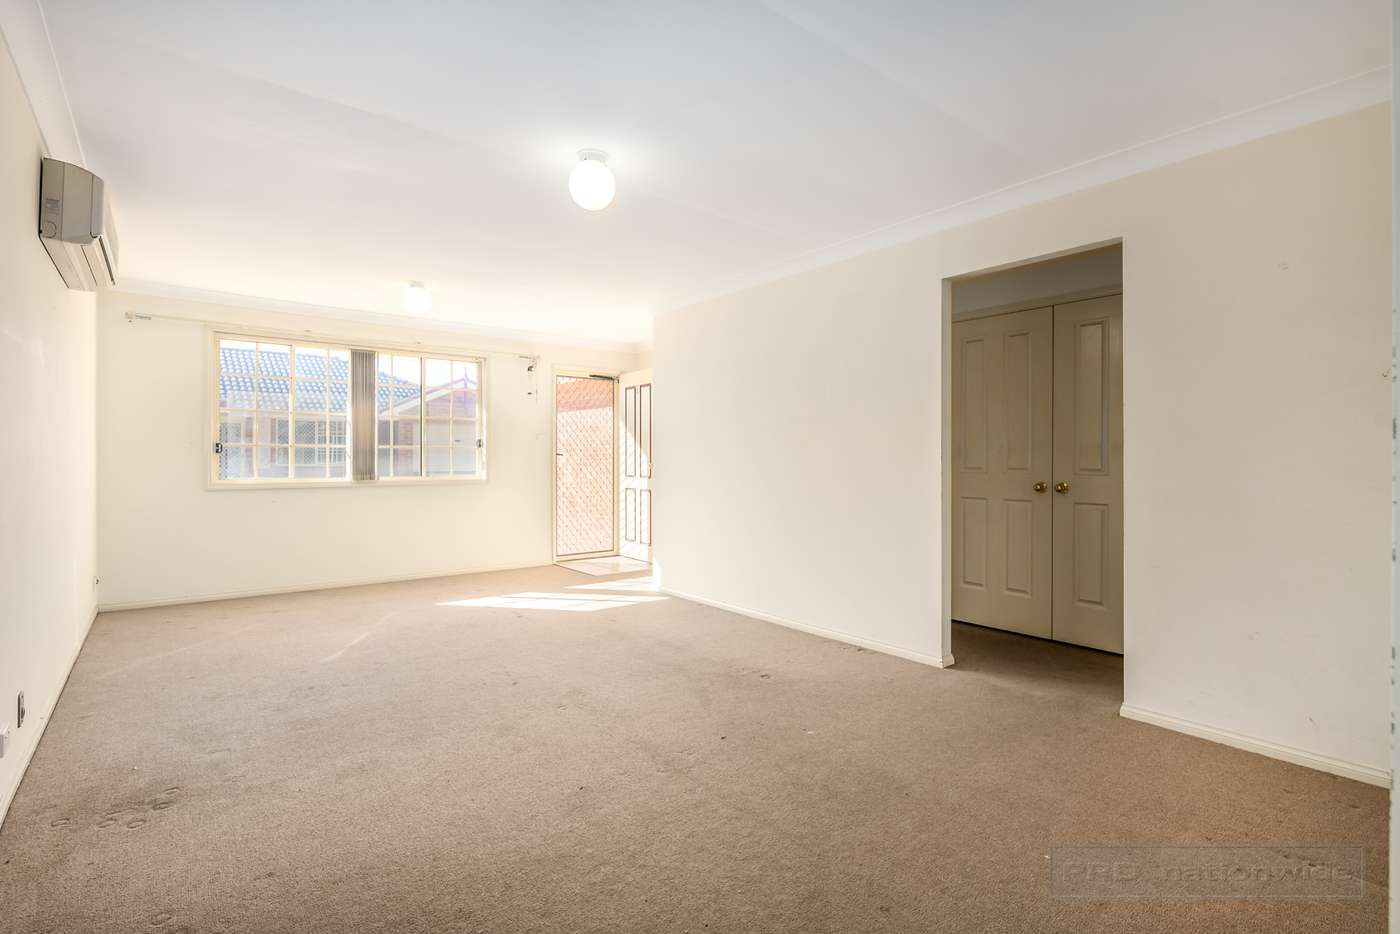 Fifth view of Homely unit listing, 6/298 Park Avenue, Kotara NSW 2289